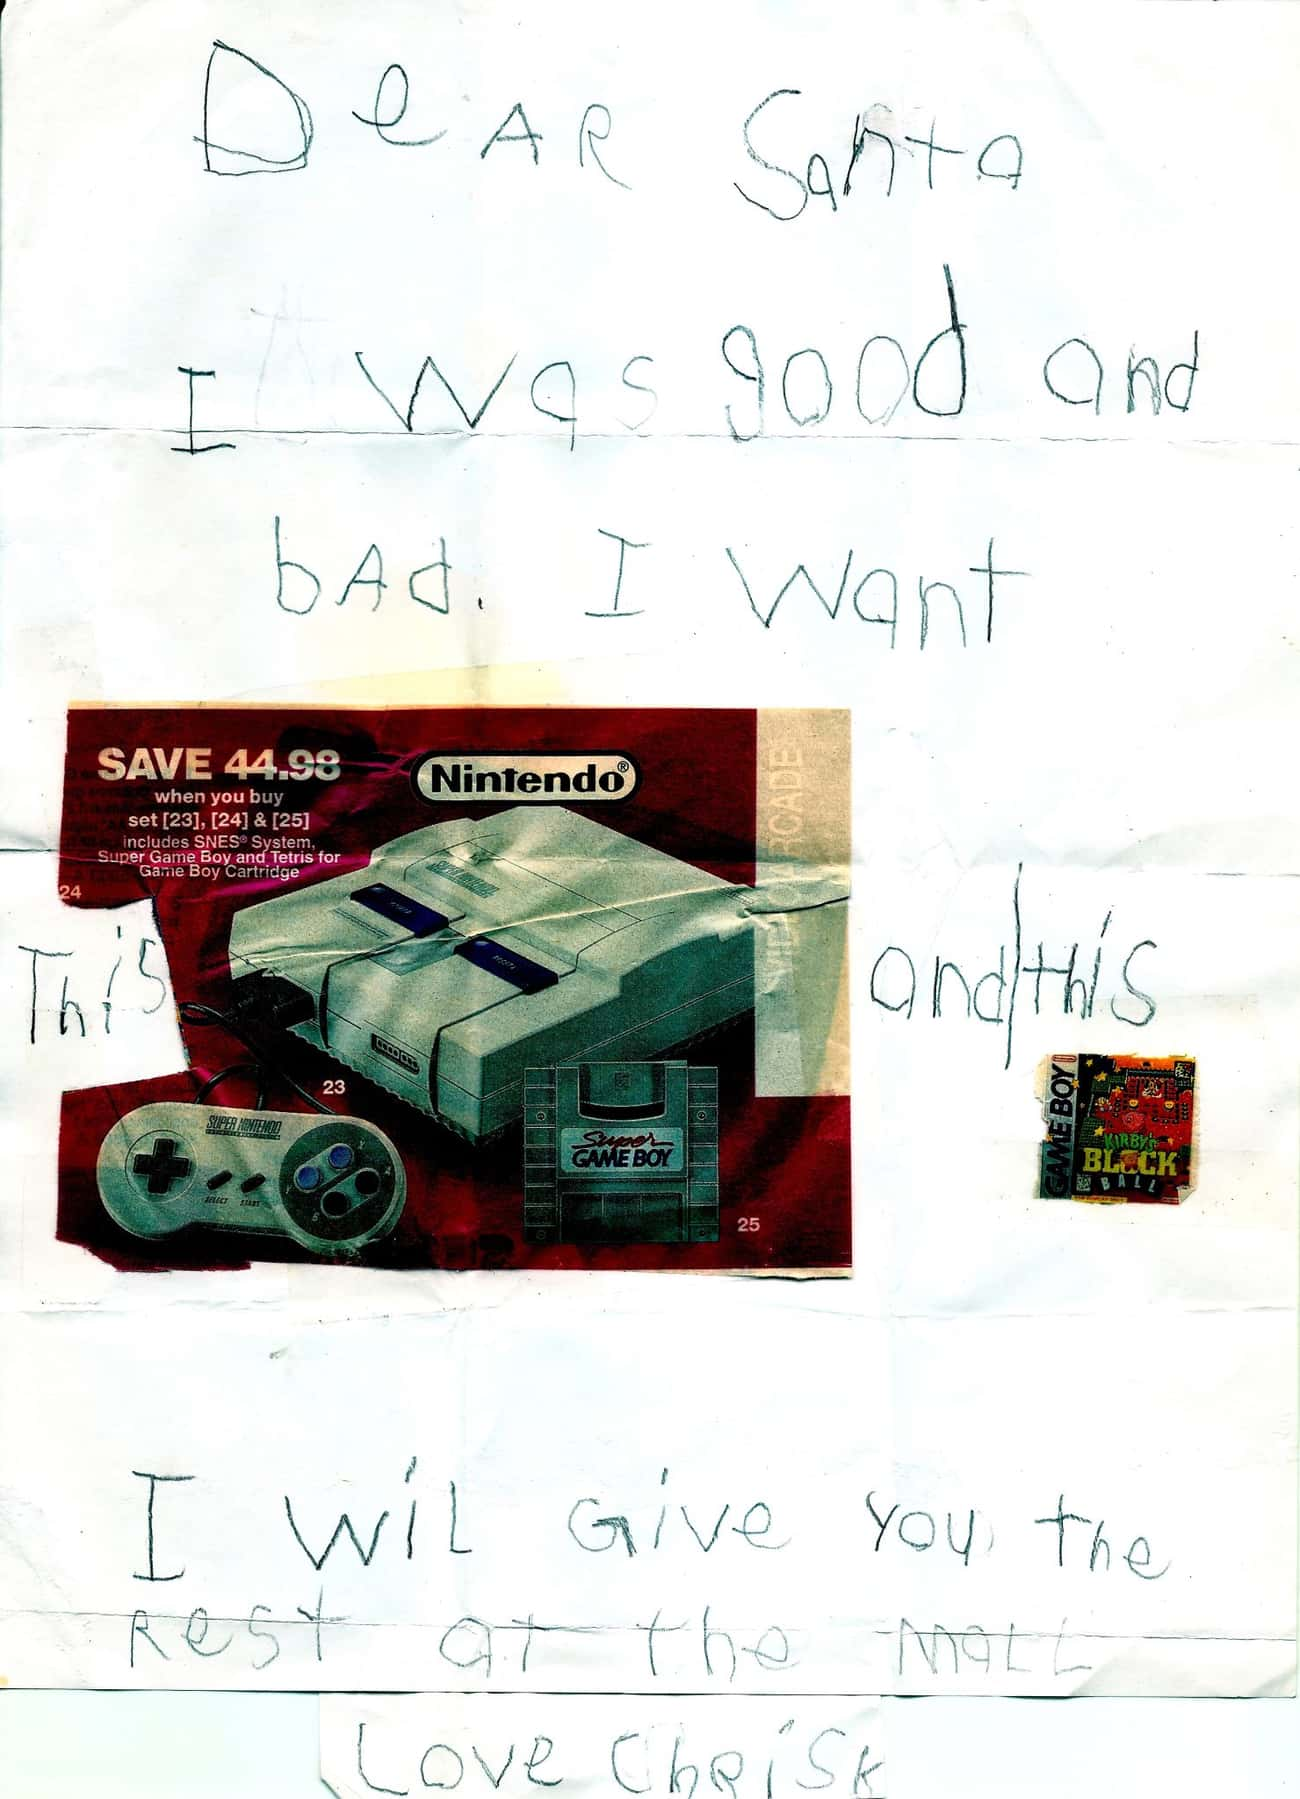 The Super Nintendo: the Only Gaming System for People Who Are Good and Bad